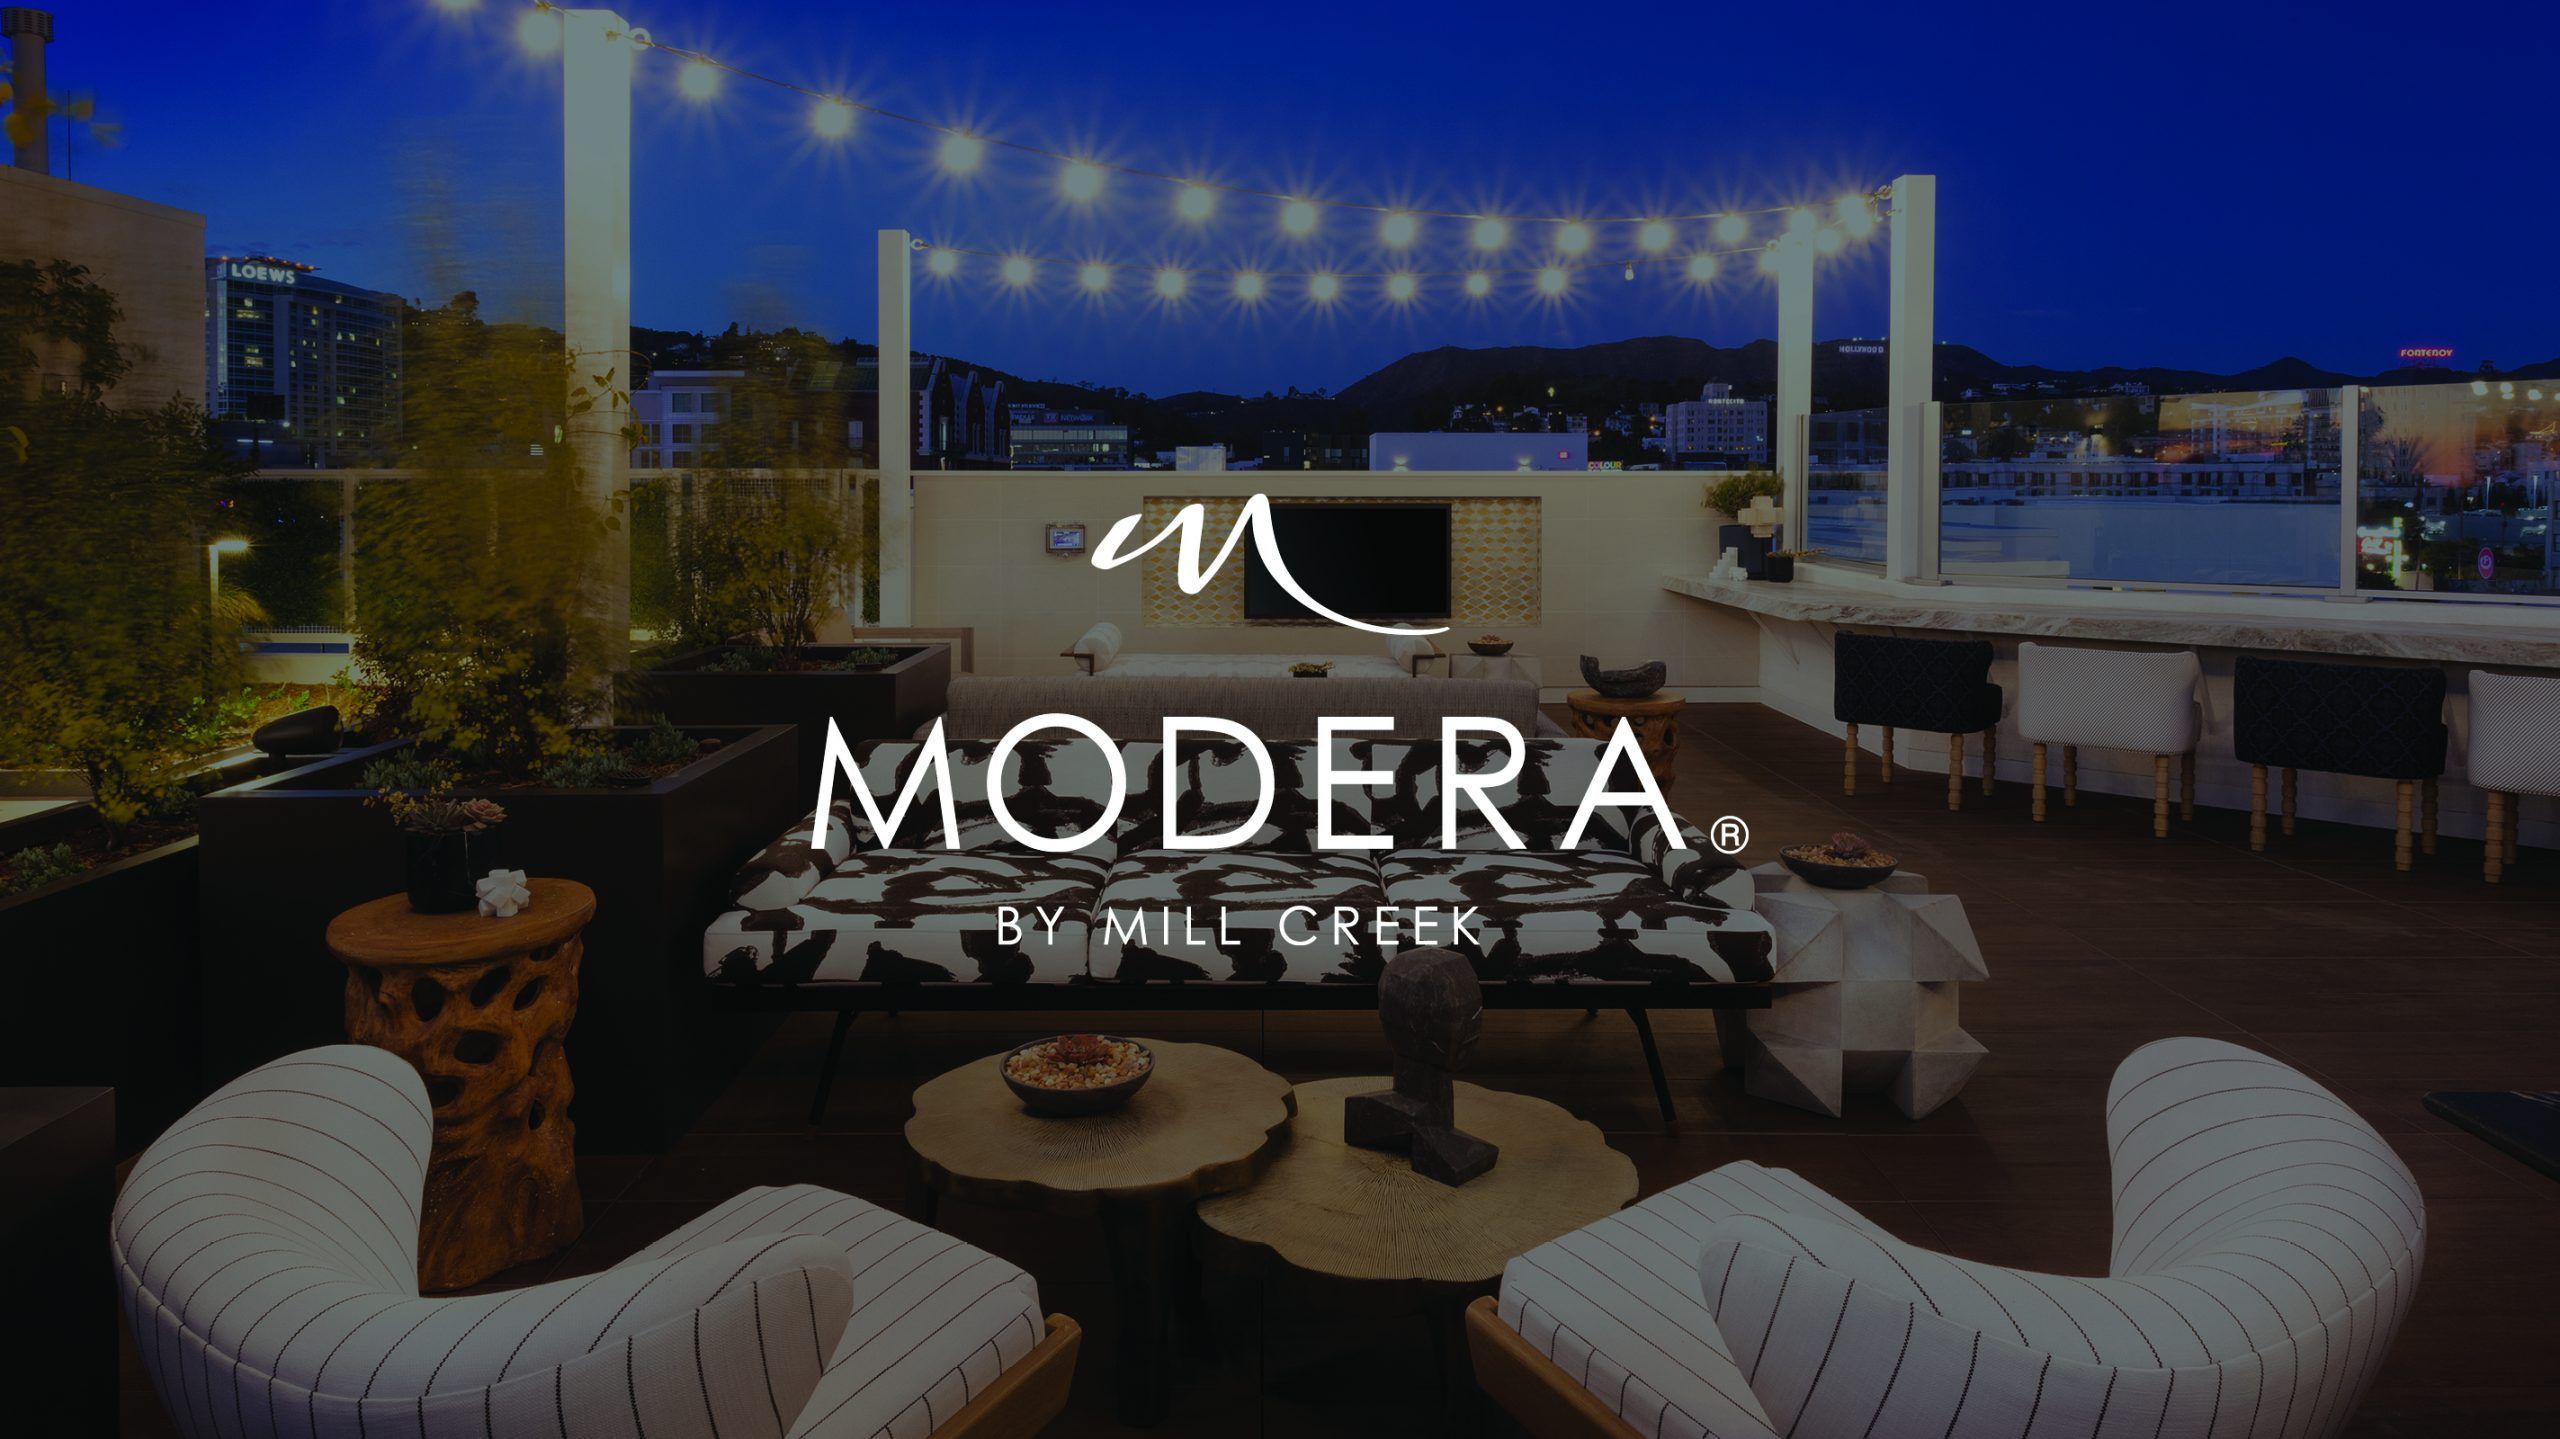 Modera by Mill Creek